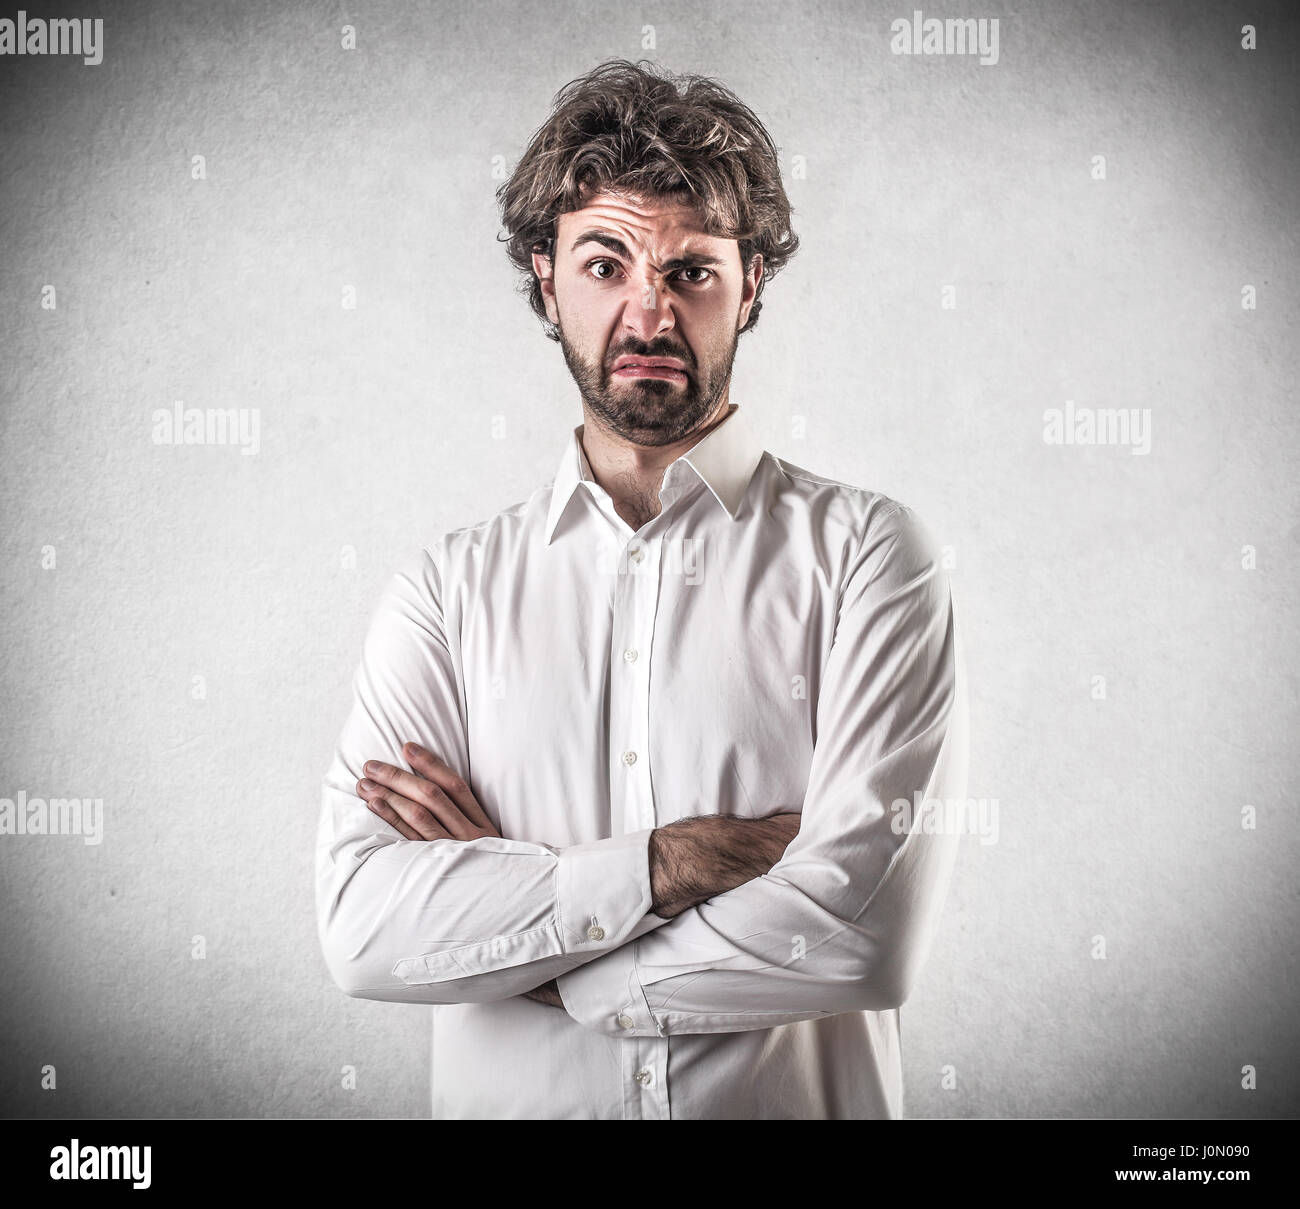 Doubtful businessman - Stock Image